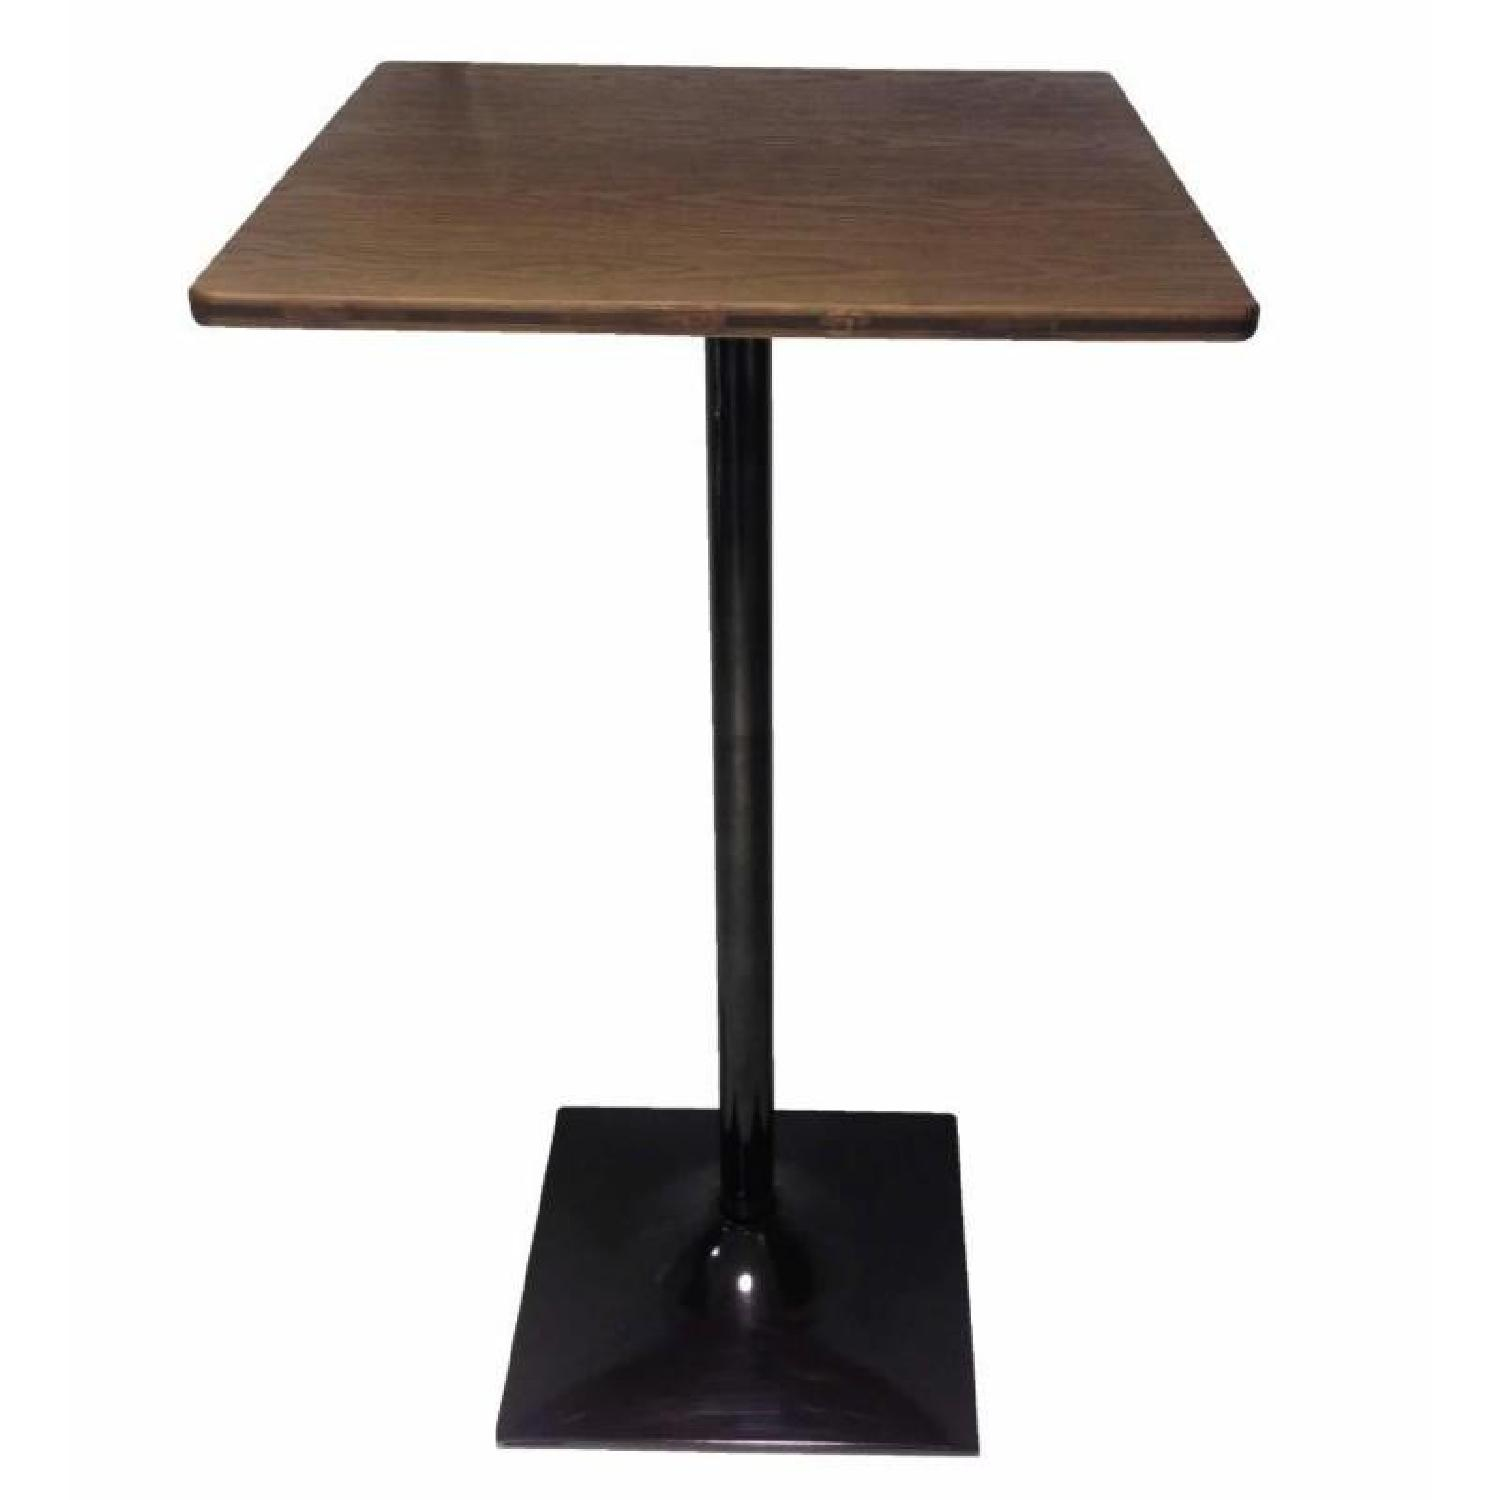 Bar Table w/ Solid Bamboo Top Finished in Dark Elm Metal Base Finished in Matte Black